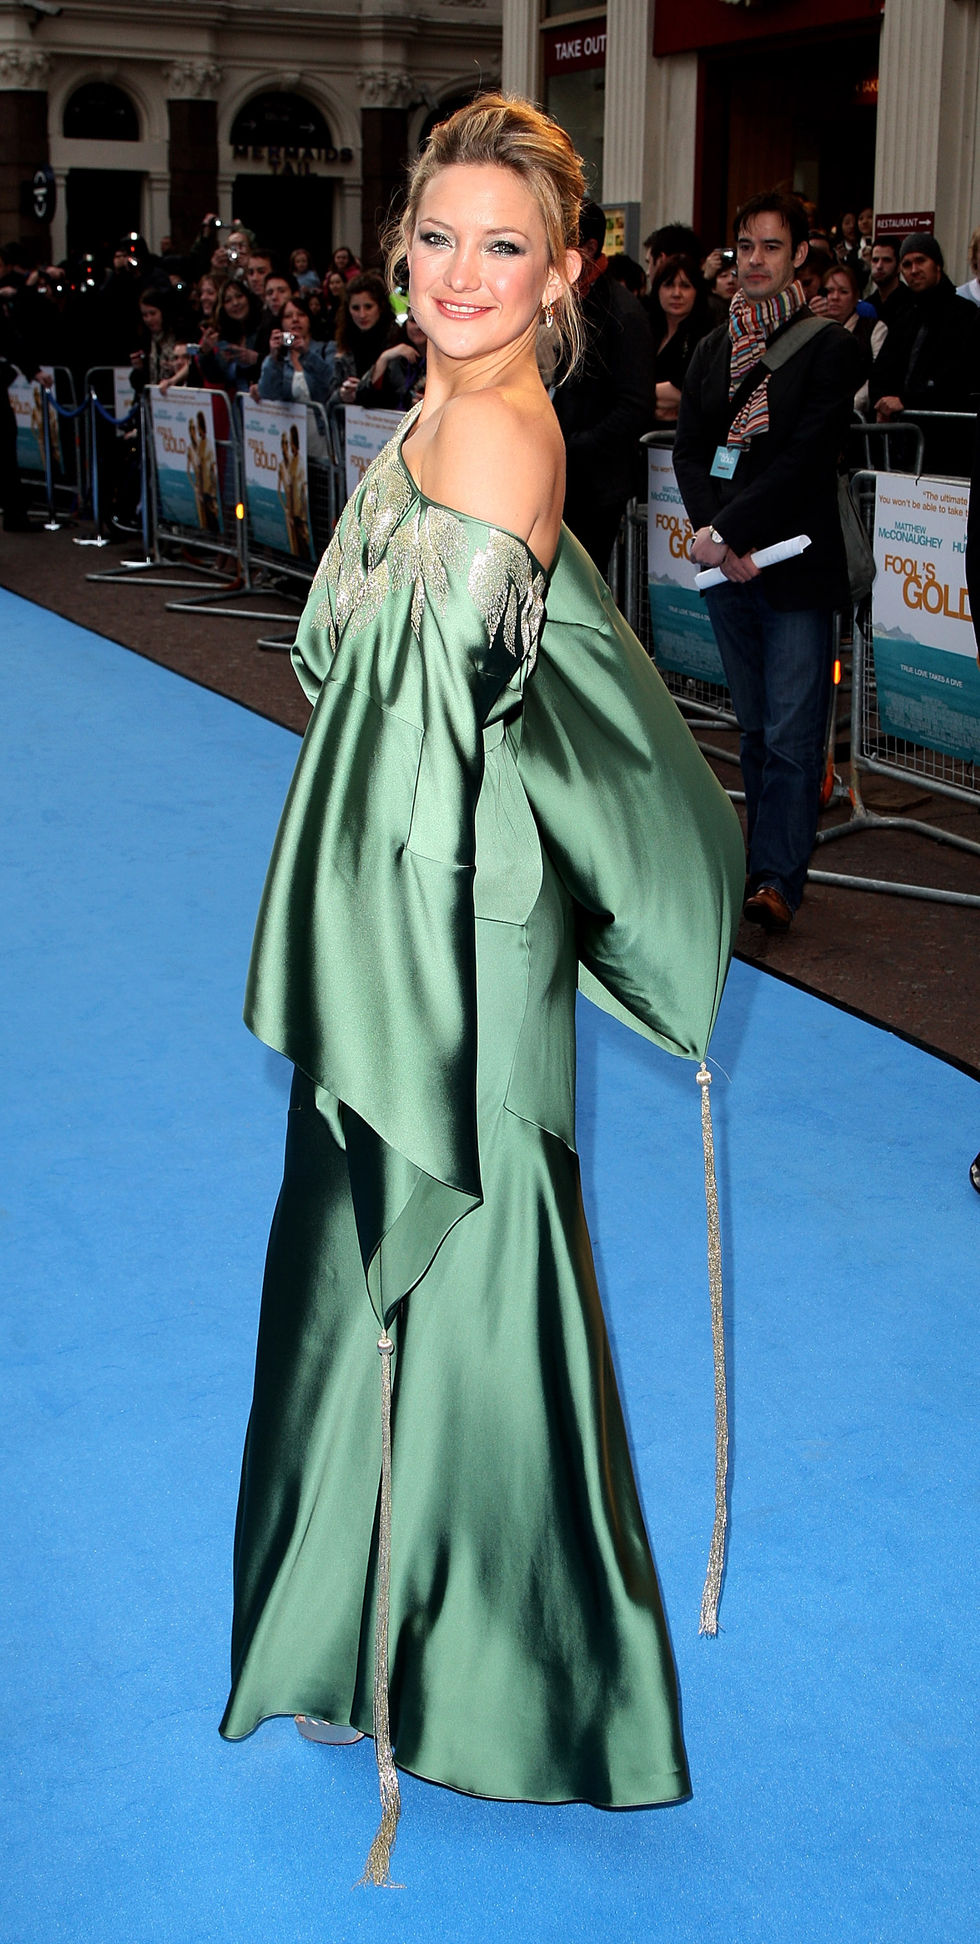 kate-hudson-fools-gold-premiere-in-london-01